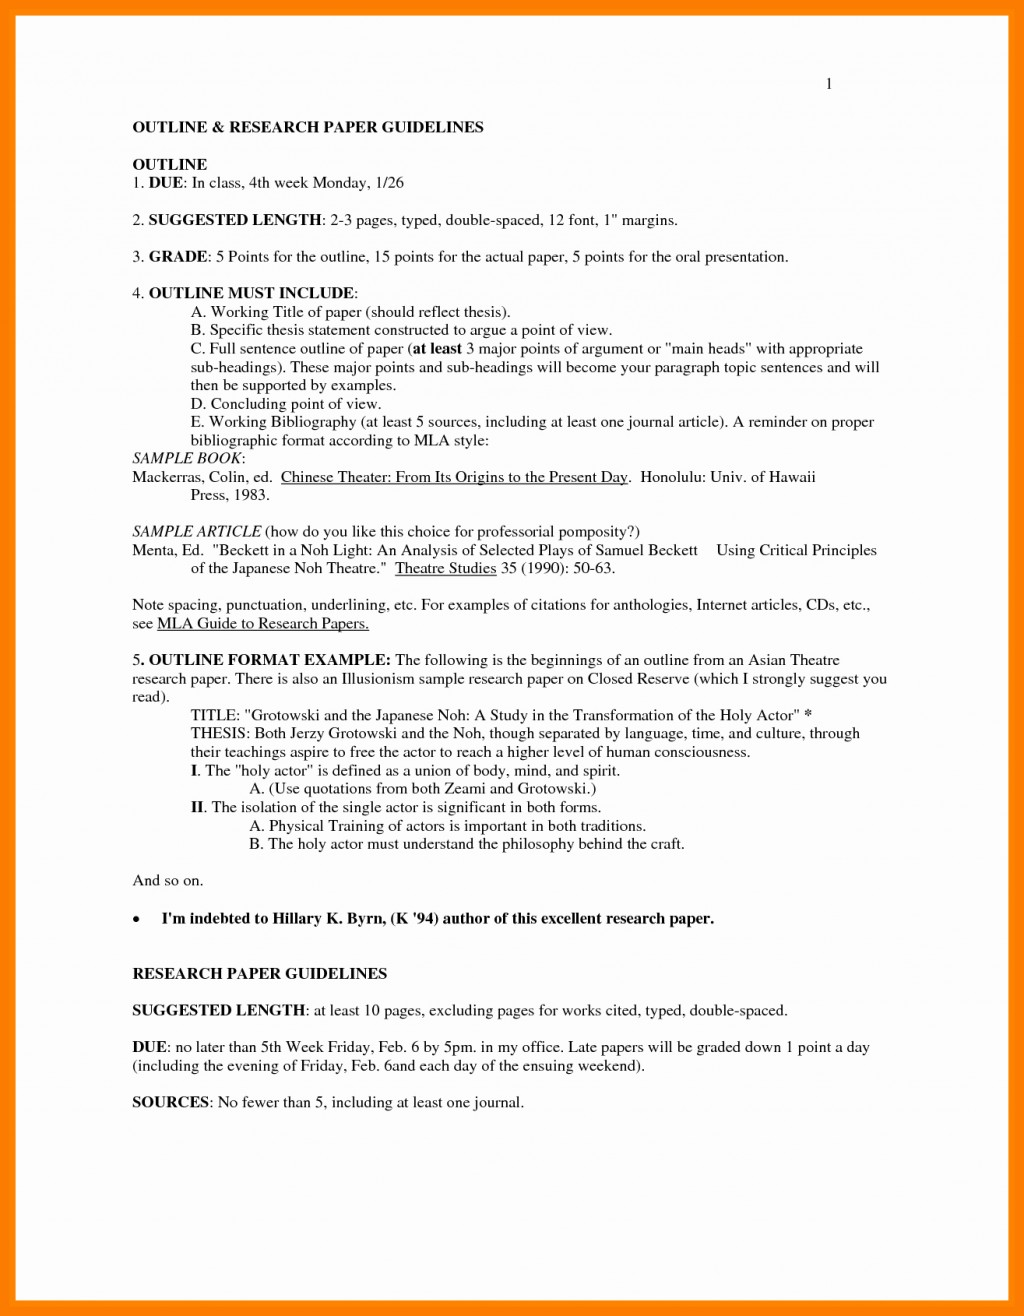 004 Mla Format Research Paper Template Elegant Sample Pages In Style Awesome Outline Example Large